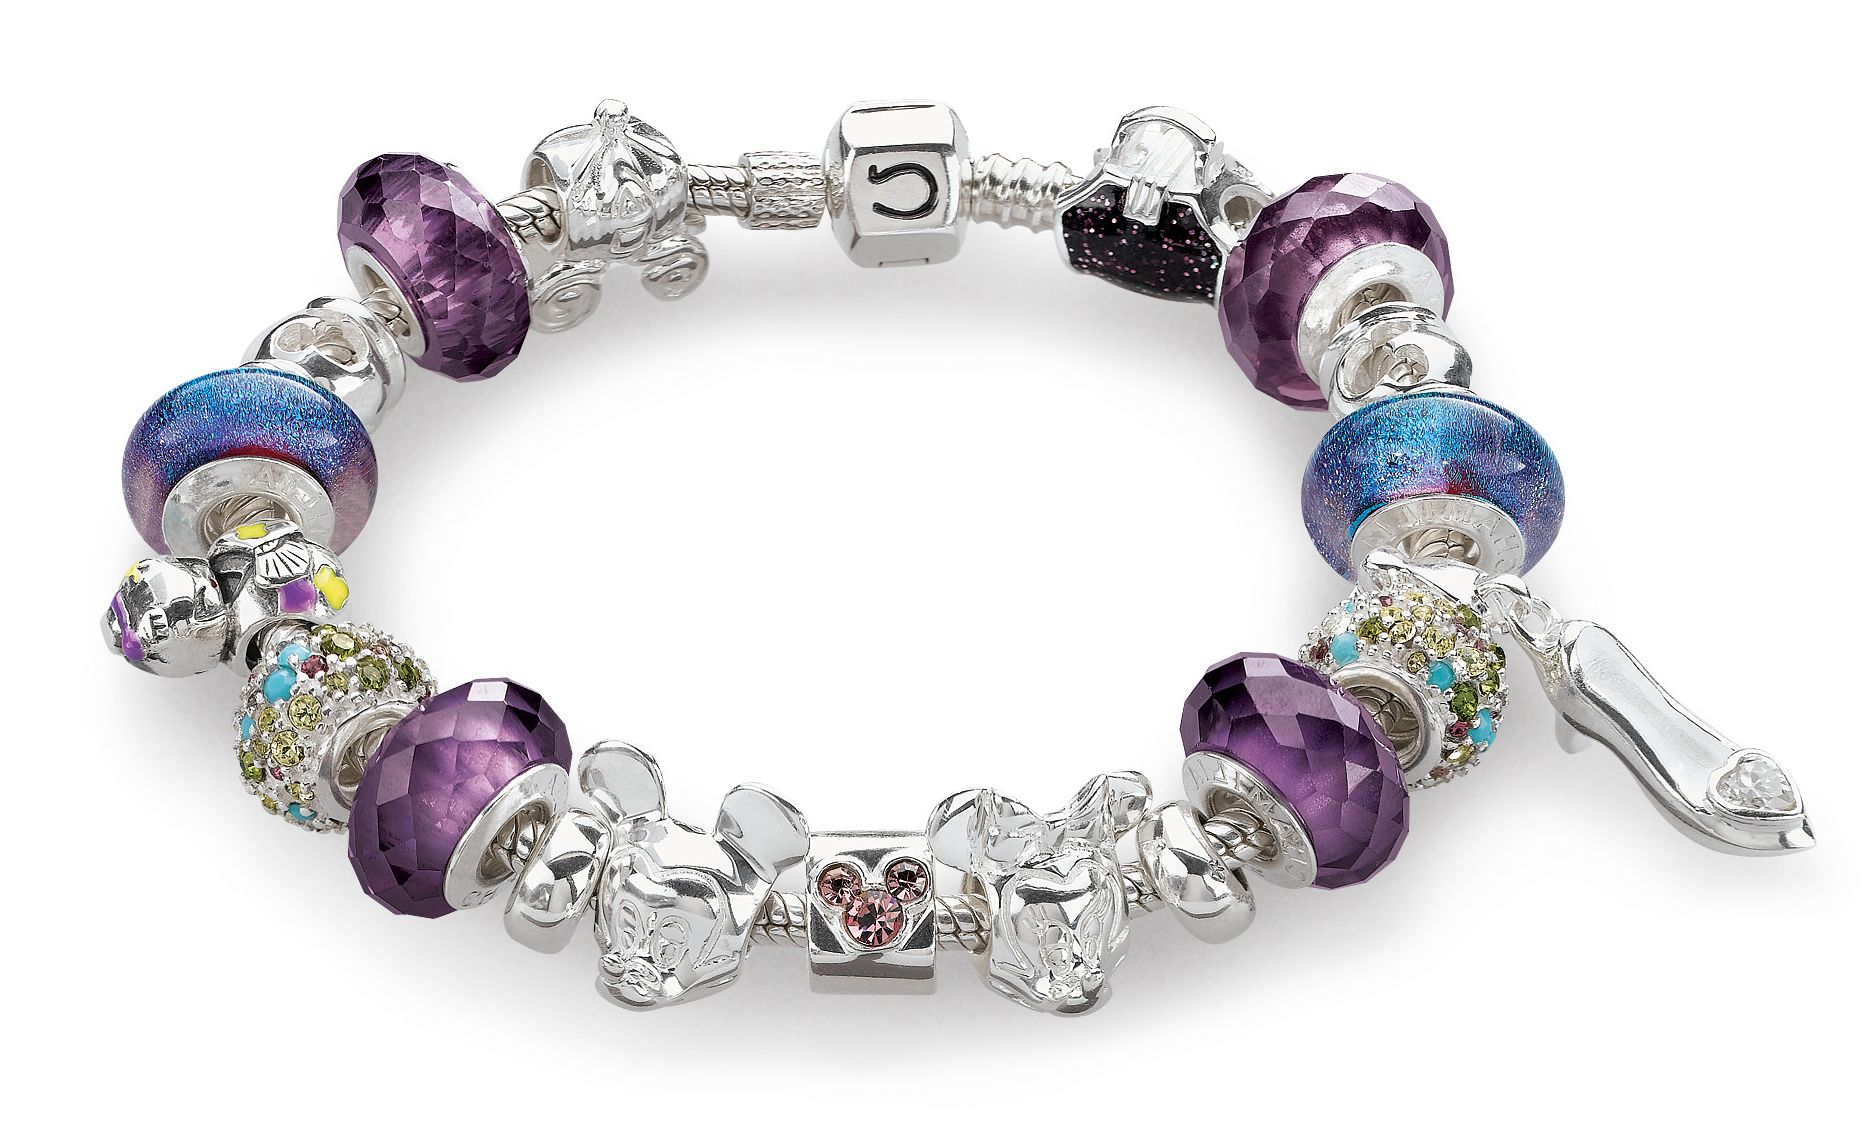 1000+ images about Disney Pandora on Pinterest | Pandora, Pandora jewelry and Pandora charms